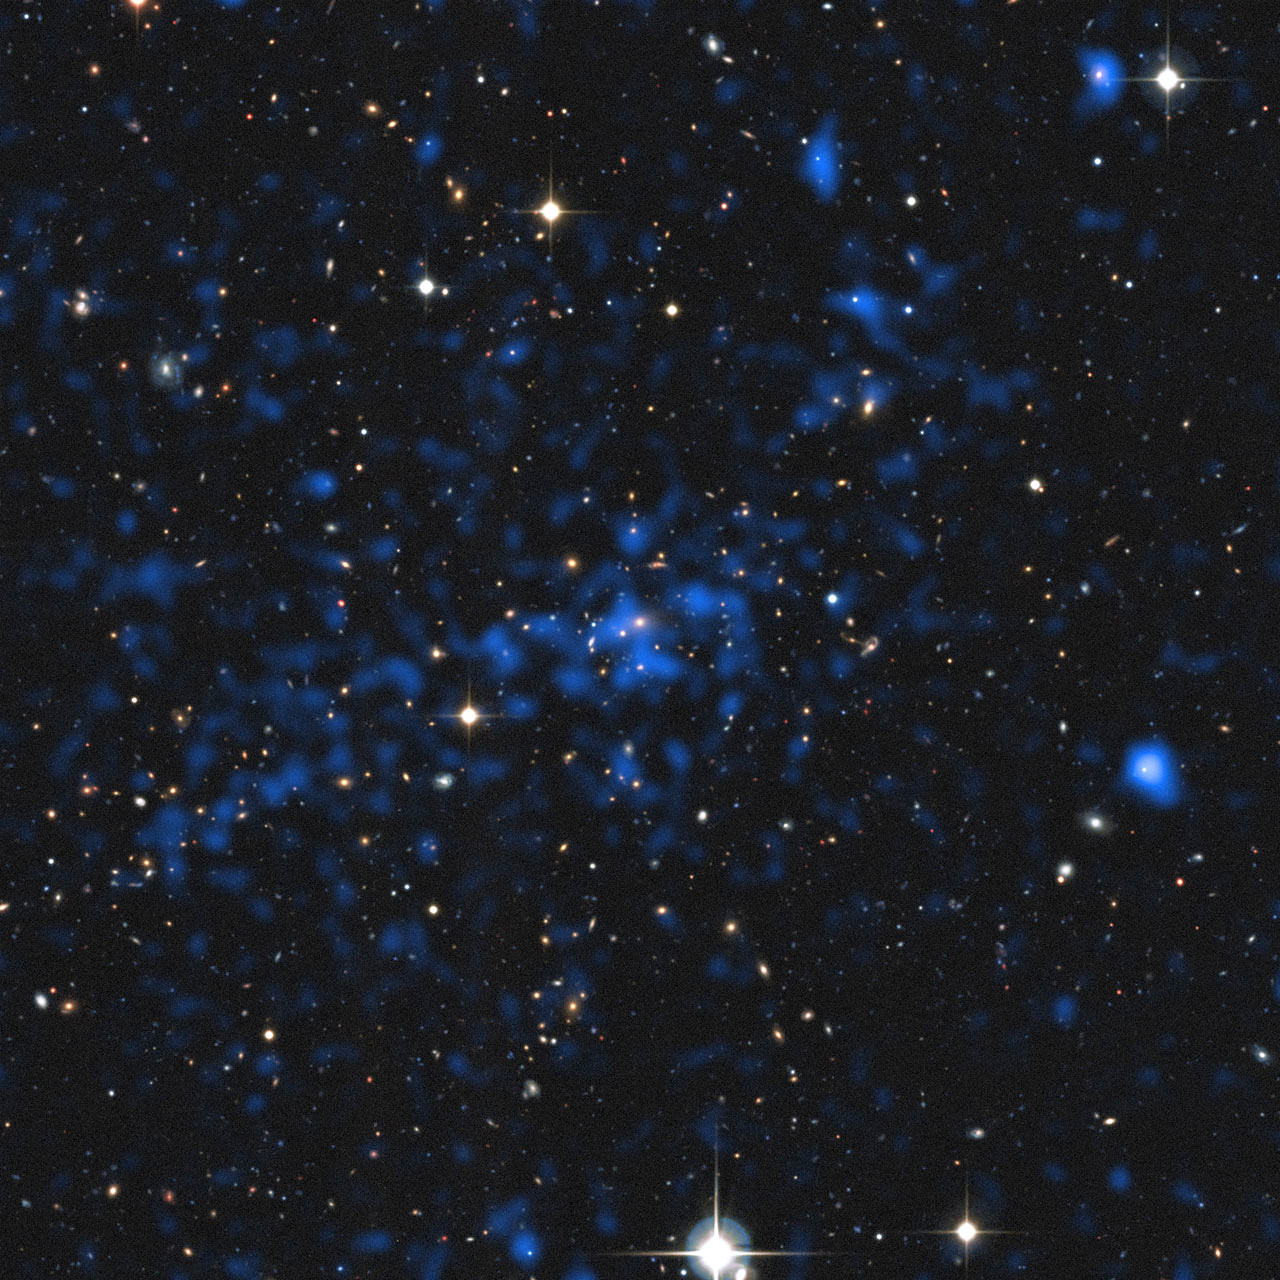 This image superimposes an X-ray image of a distant cluster (the blue image, from ESA's XMM-Newton satellite) on top of a ground-based view of the sky (from the Canada France Hawaii Telescope). Some of the brightest X-ray objects are galaxies with brilliant centres powered by supermassive black holes. The cluster at the centre of the picture shows up as an extended patch of X-ray emission, coming from hot gas. Image credit: ESA/XXL consortium/Canada France Hawaii Telescope.